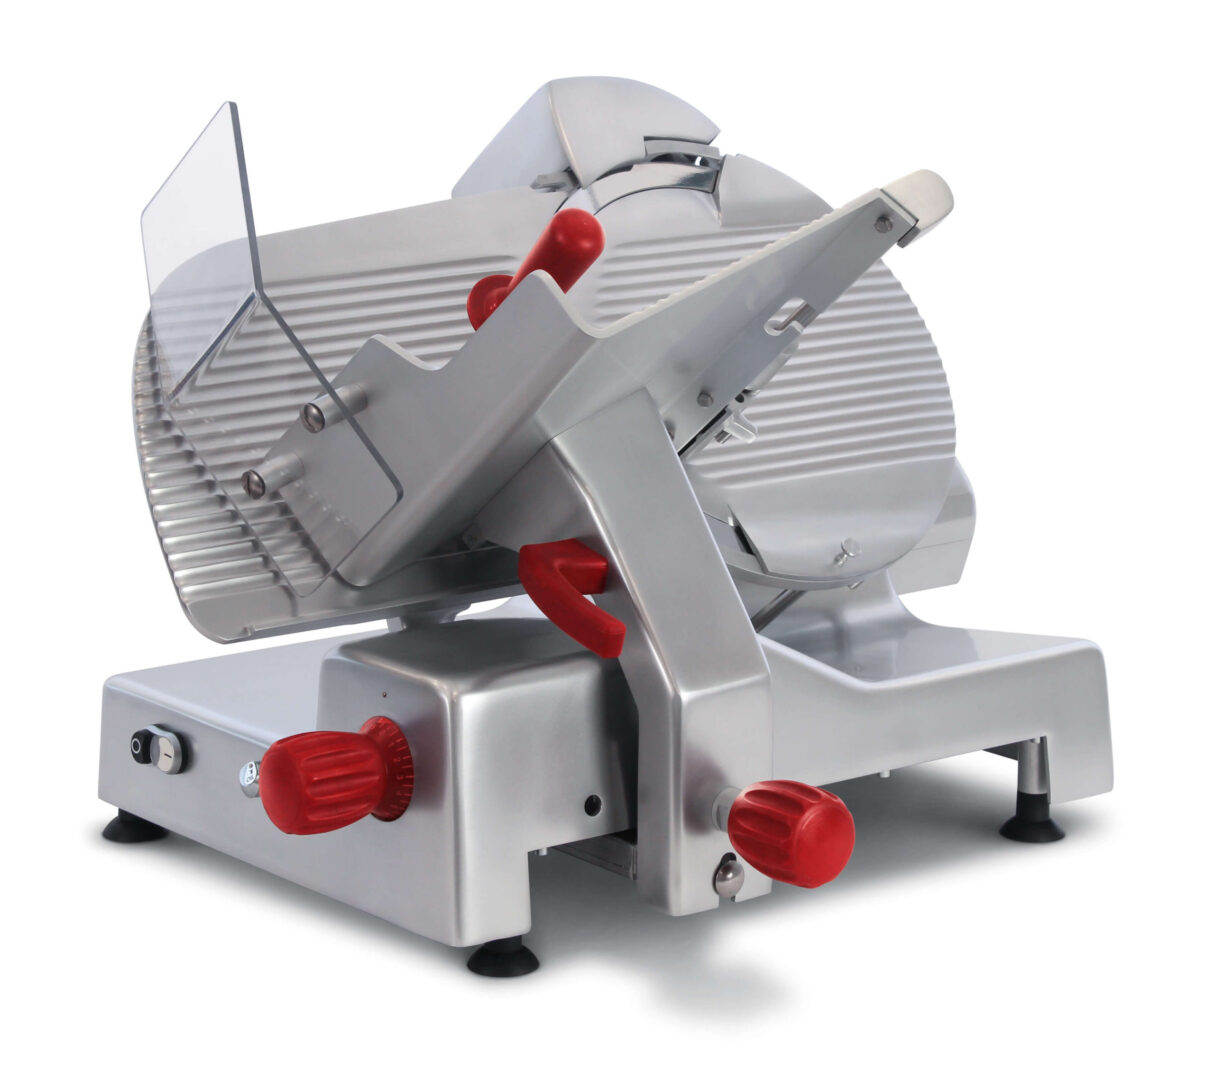 NOAW Manual Gravity Feed Gear Driven Slicer – Heavy Duty